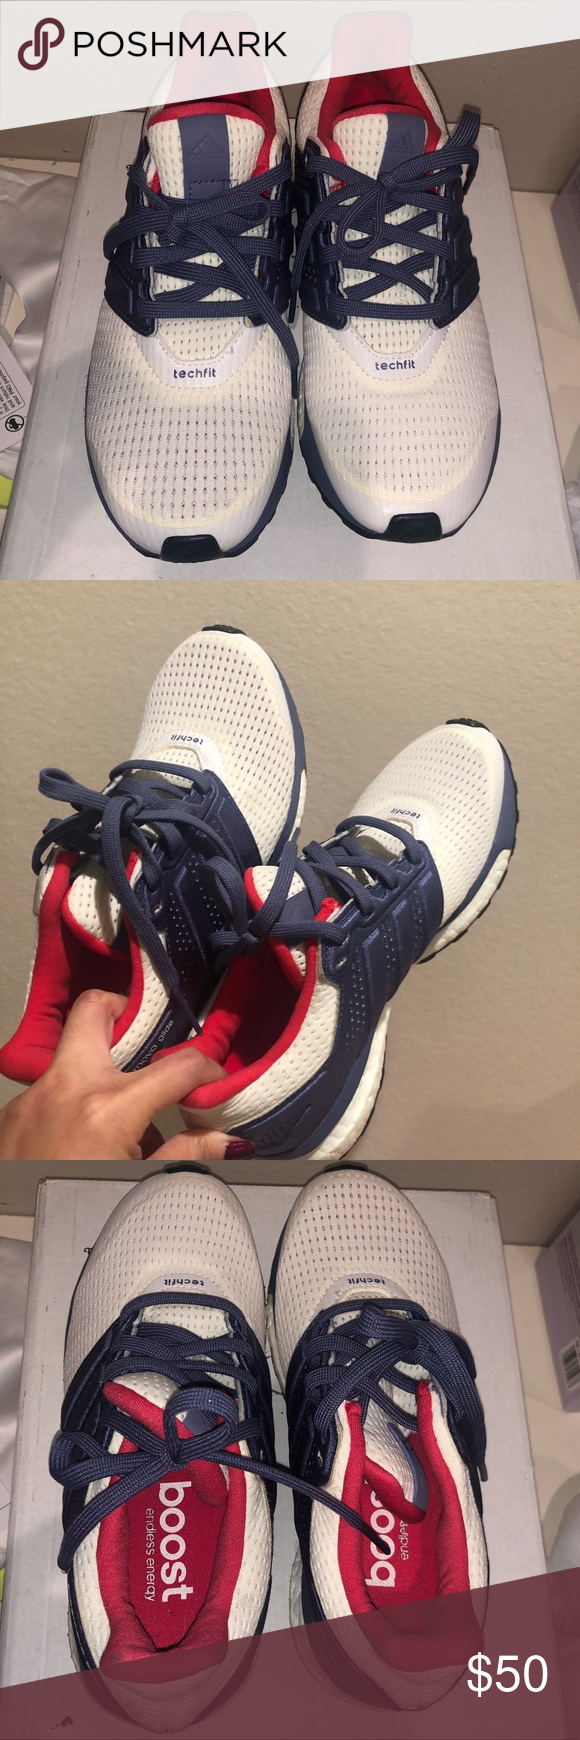 outlet store sale exclusive range the latest Adidas Supernova Glide Boost (6) Adidas Women's Supernova ...